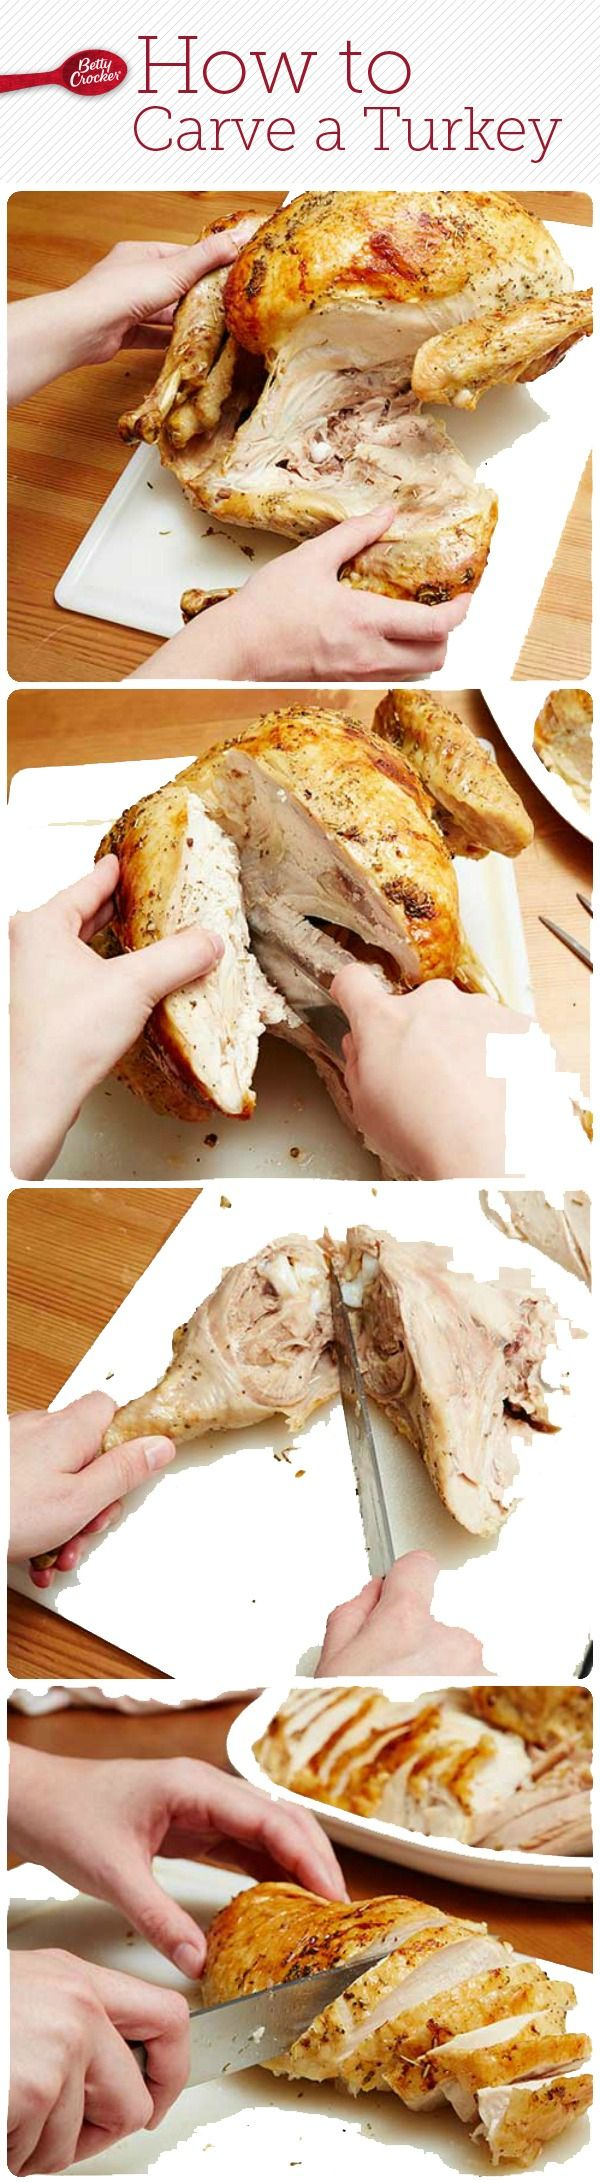 Betty shows you how to divvy up the Thanksgiving turkey in 4 simple steps!